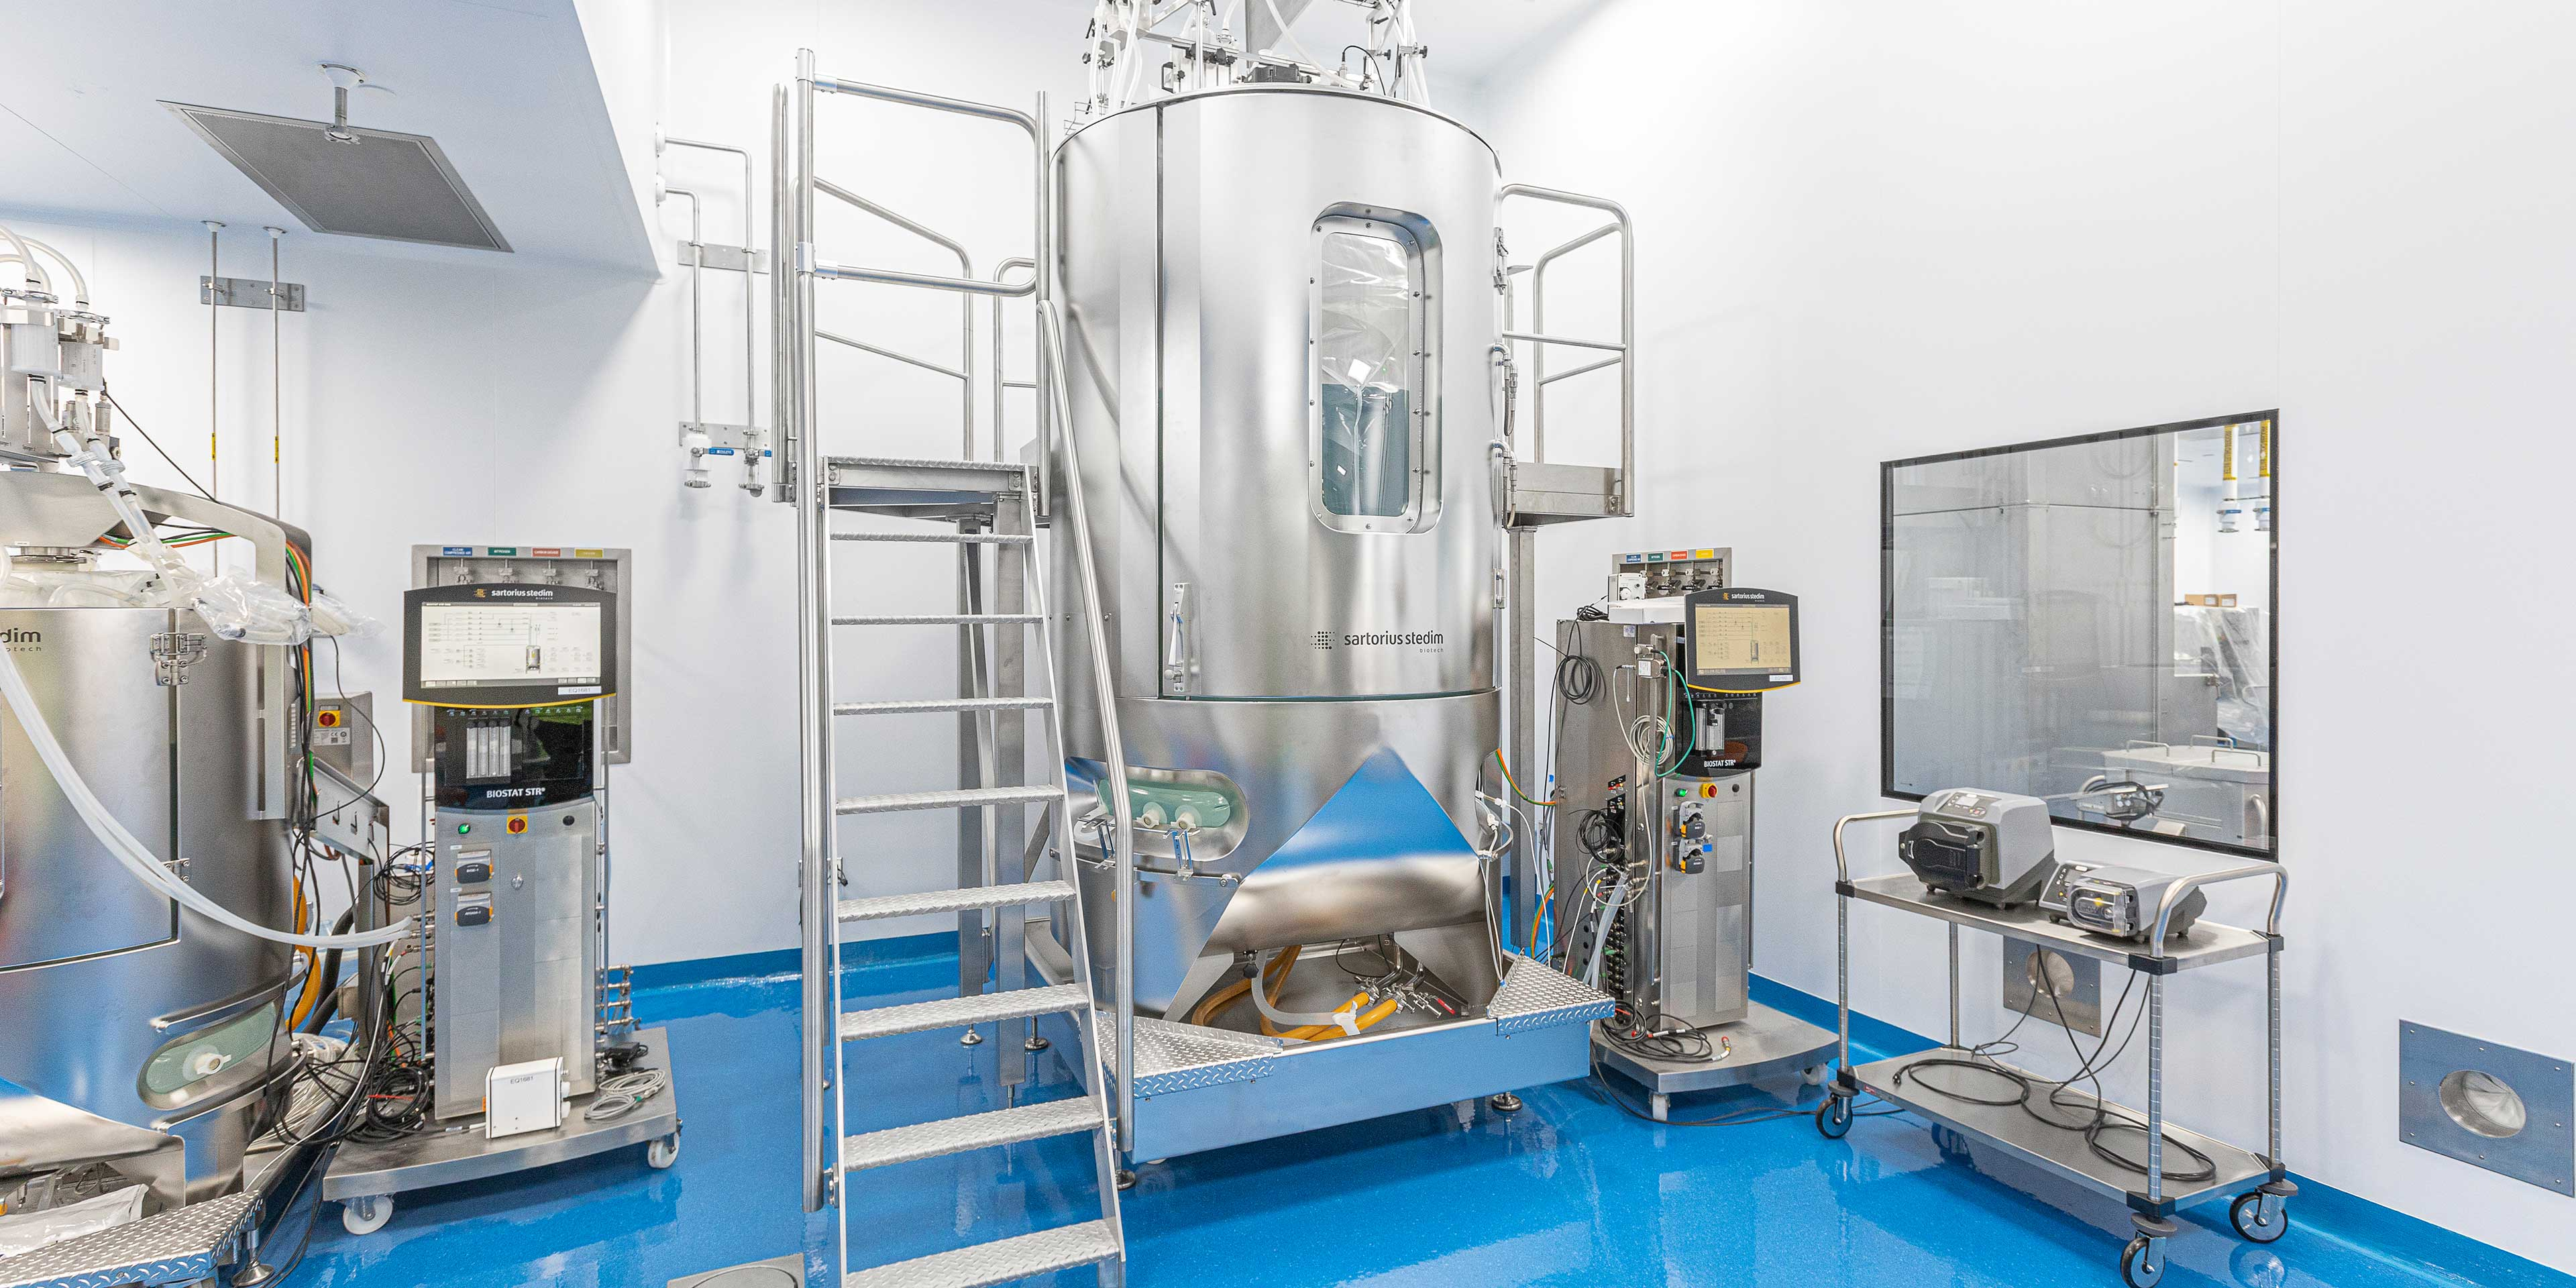 Bioreactors in Abzena's biopharma expansion project